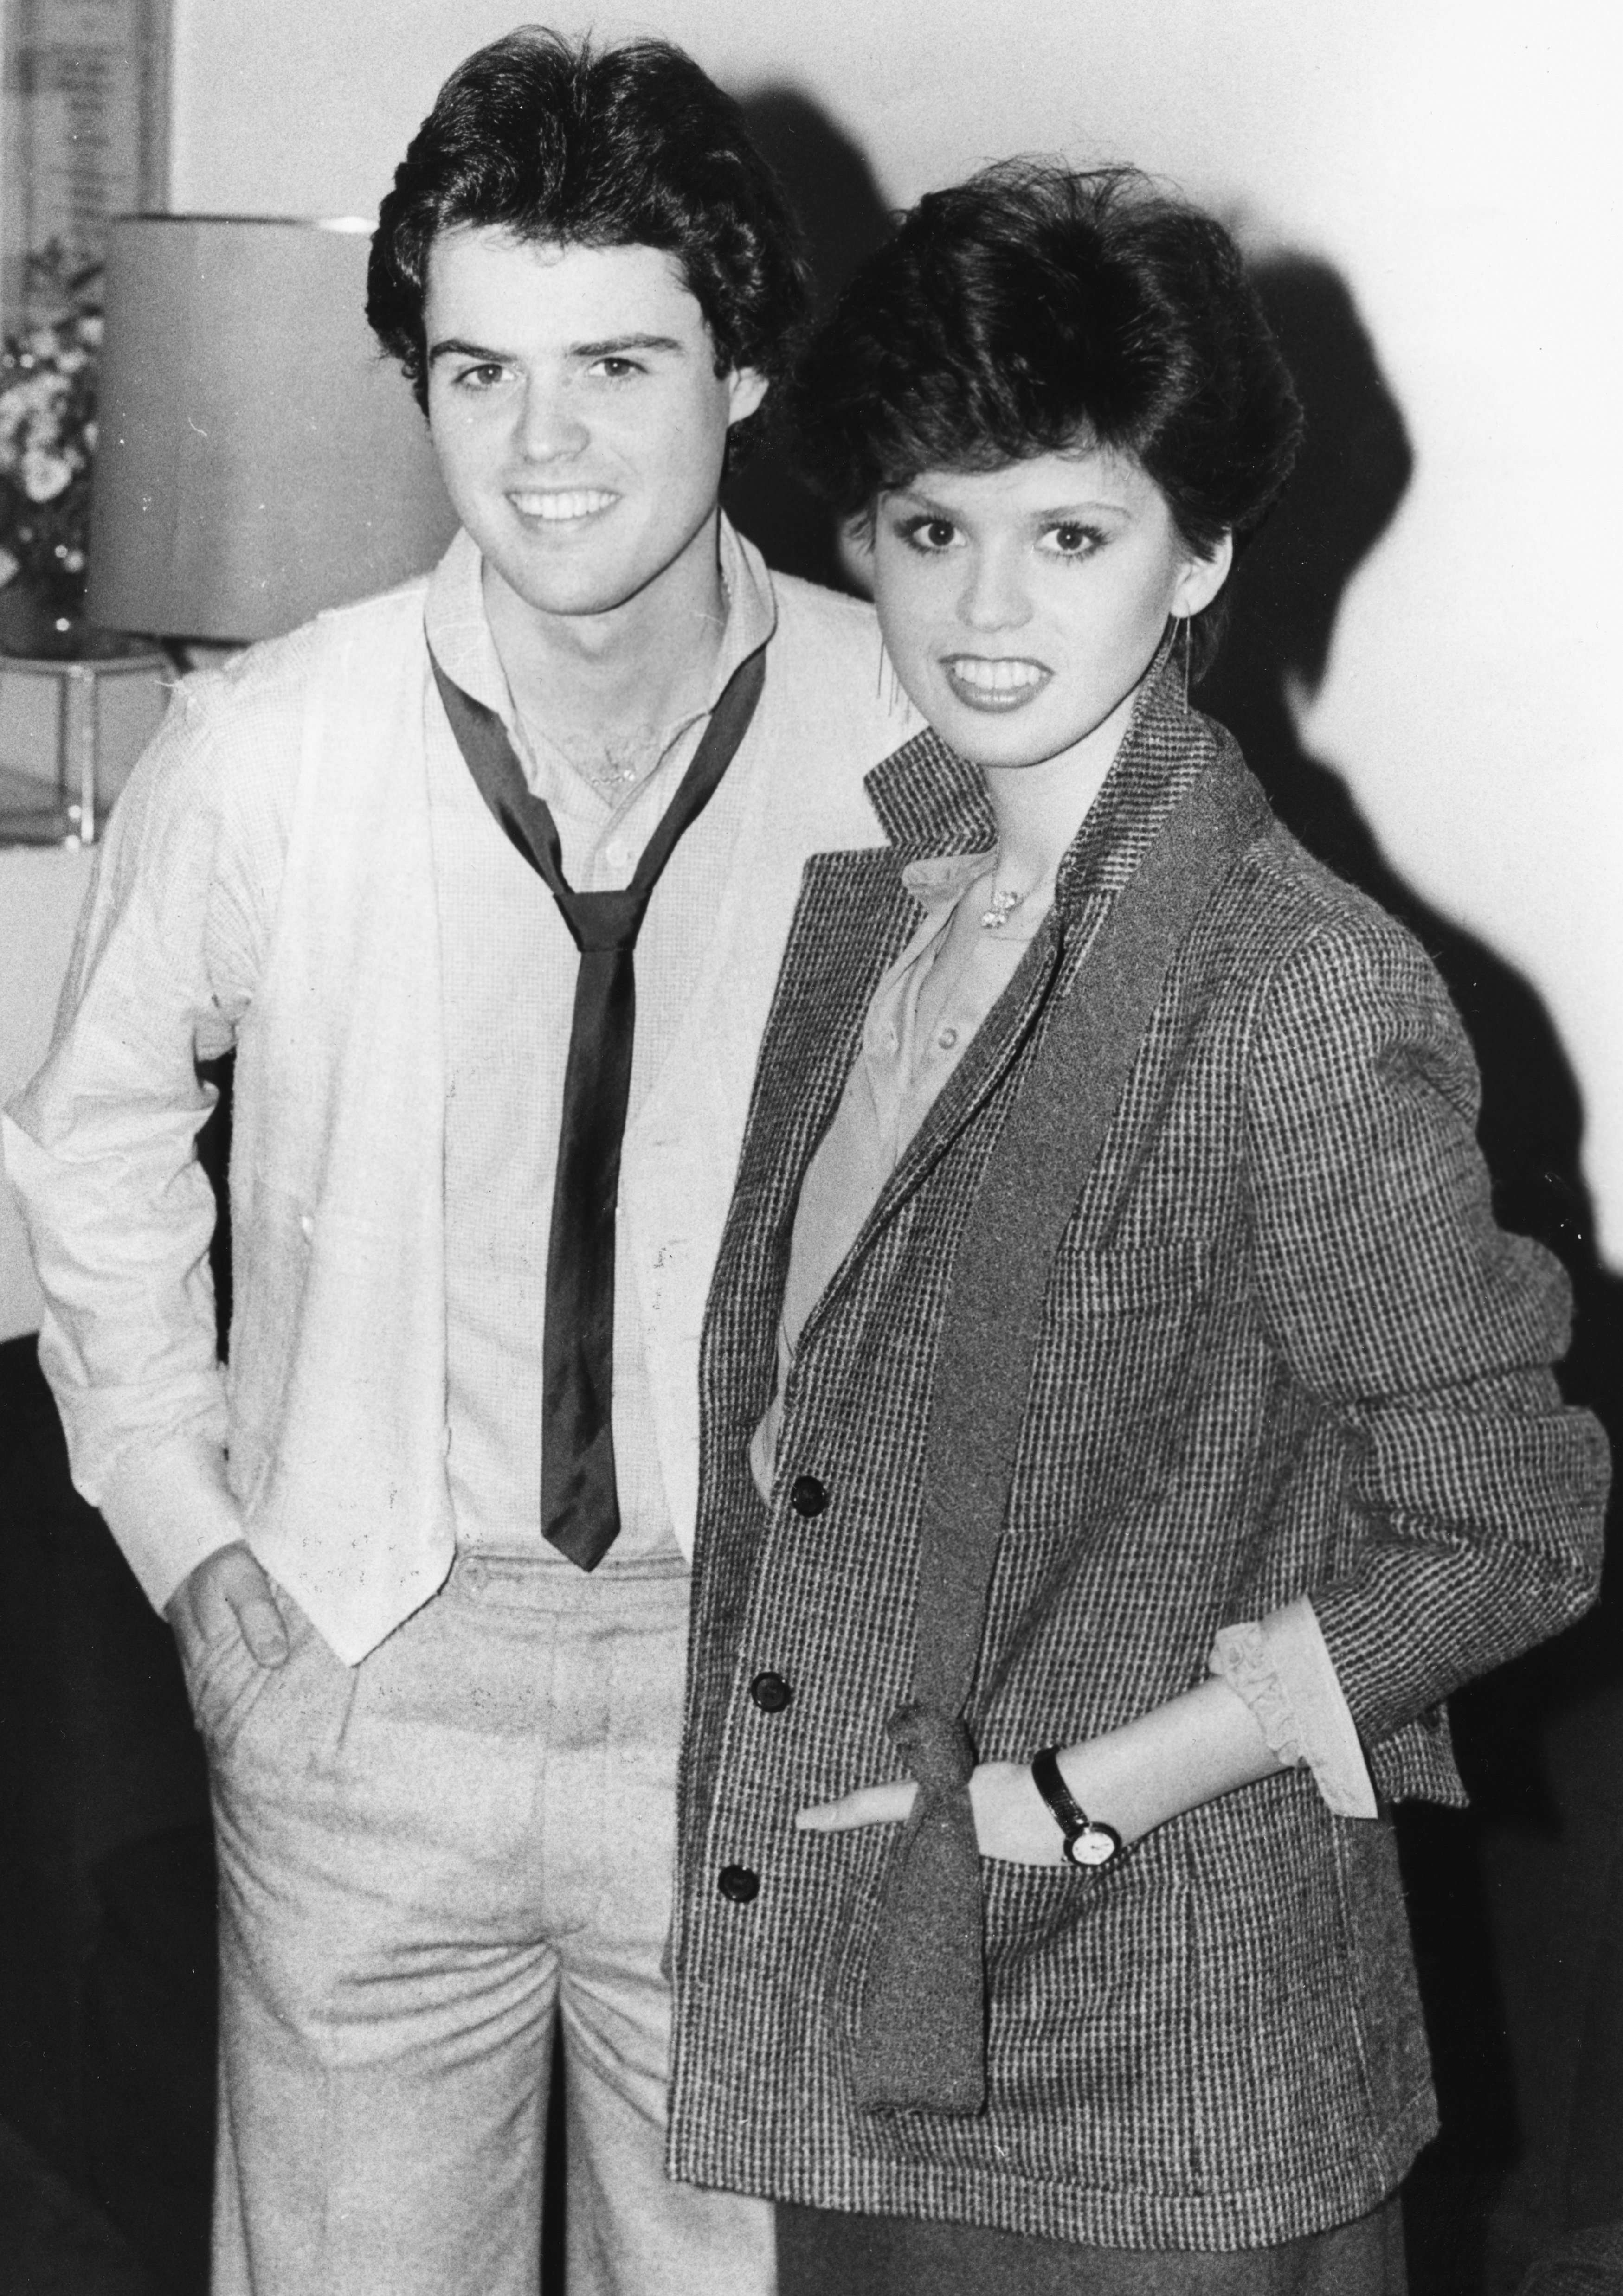 Donny and Marie Osmond, smiling for the cameras at a press conference, London, January 22nd 1979. | Source: Getty Images.